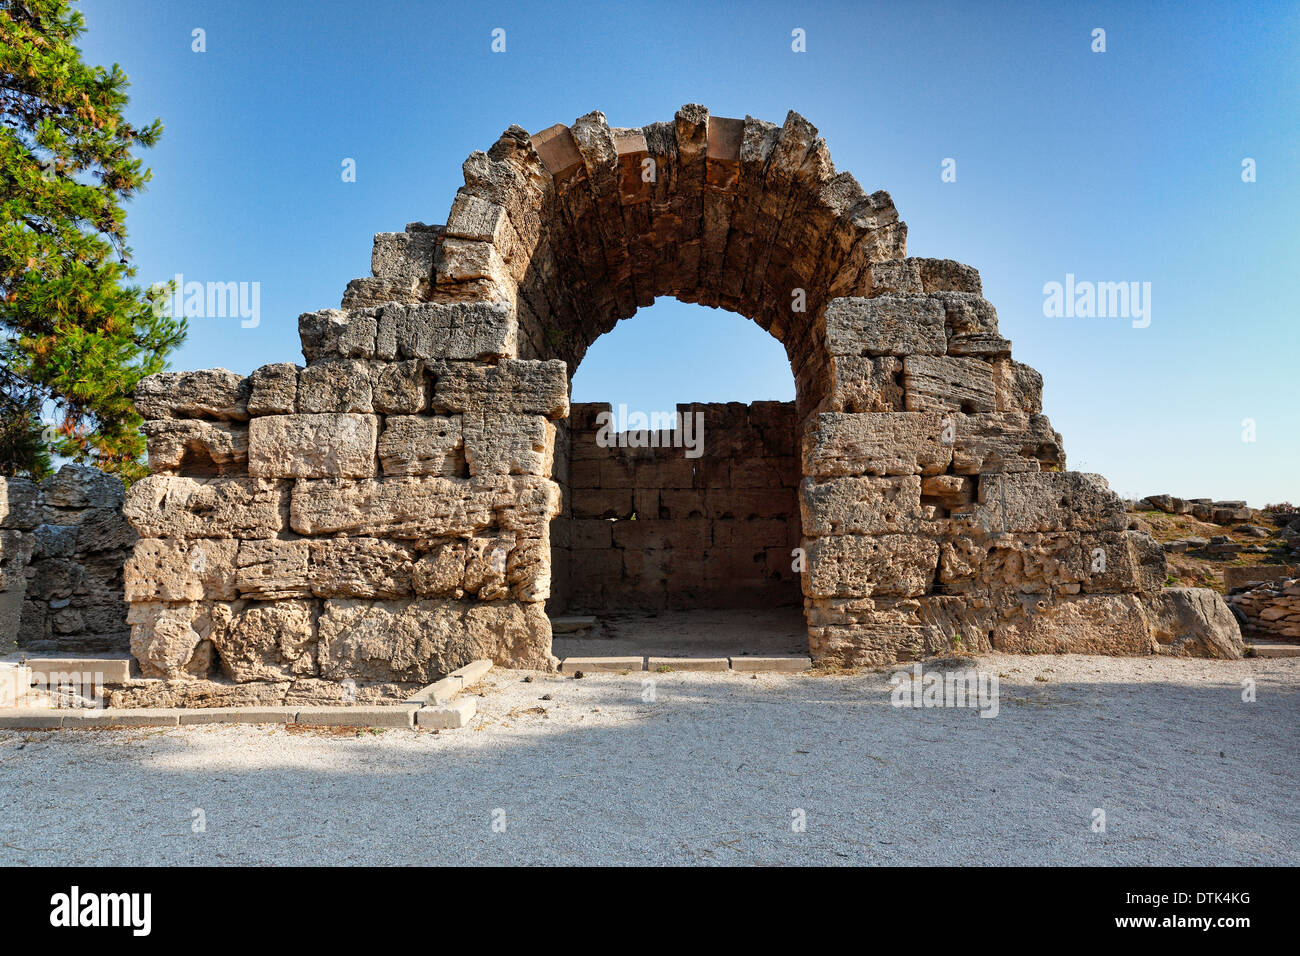 Northwest Shops in Ancient Corinth, Greece - Stock Image